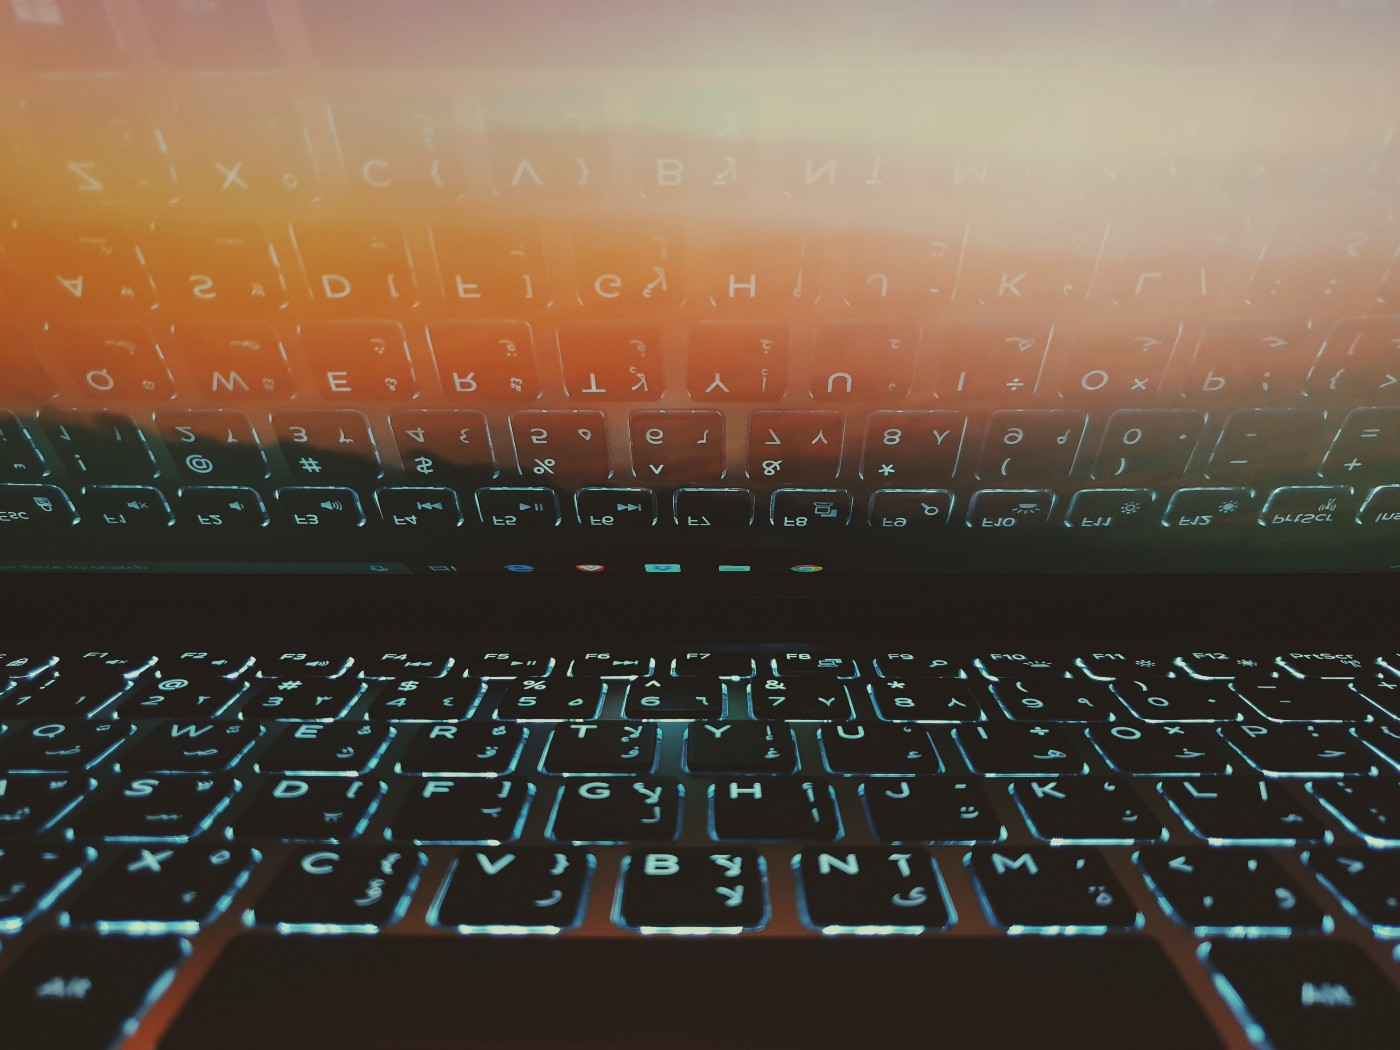 Keyboard and keyboard reflexion on the laptop screen